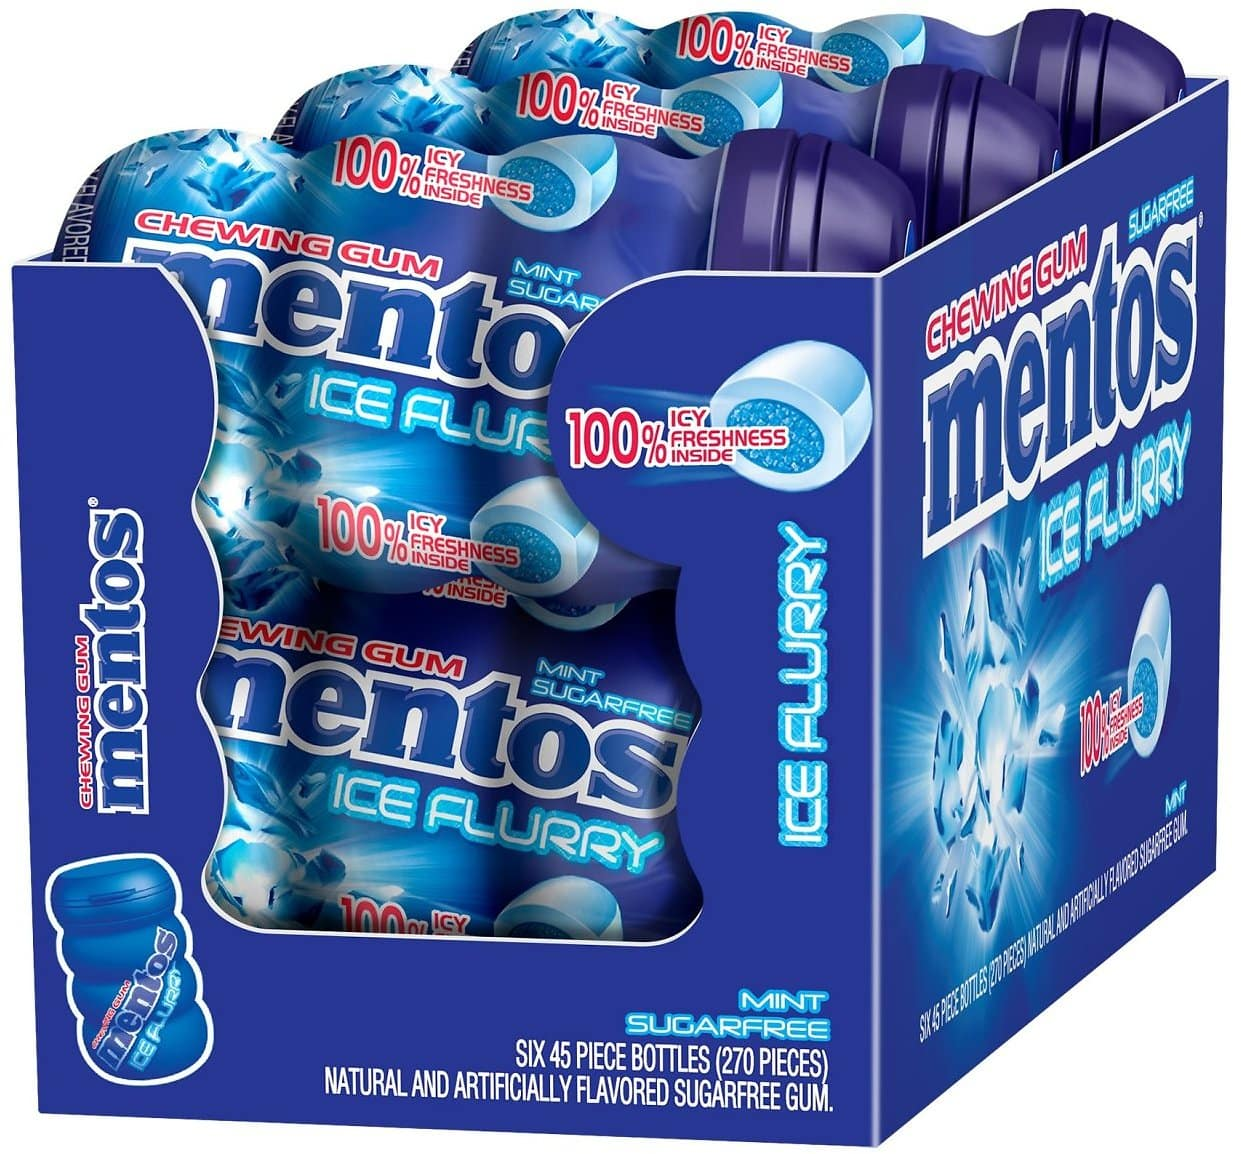 Mentos Sugar-Free Chewing Gum, Ice Flurry, 45 Piece Bottle (Pack of 6) $9.58 AC